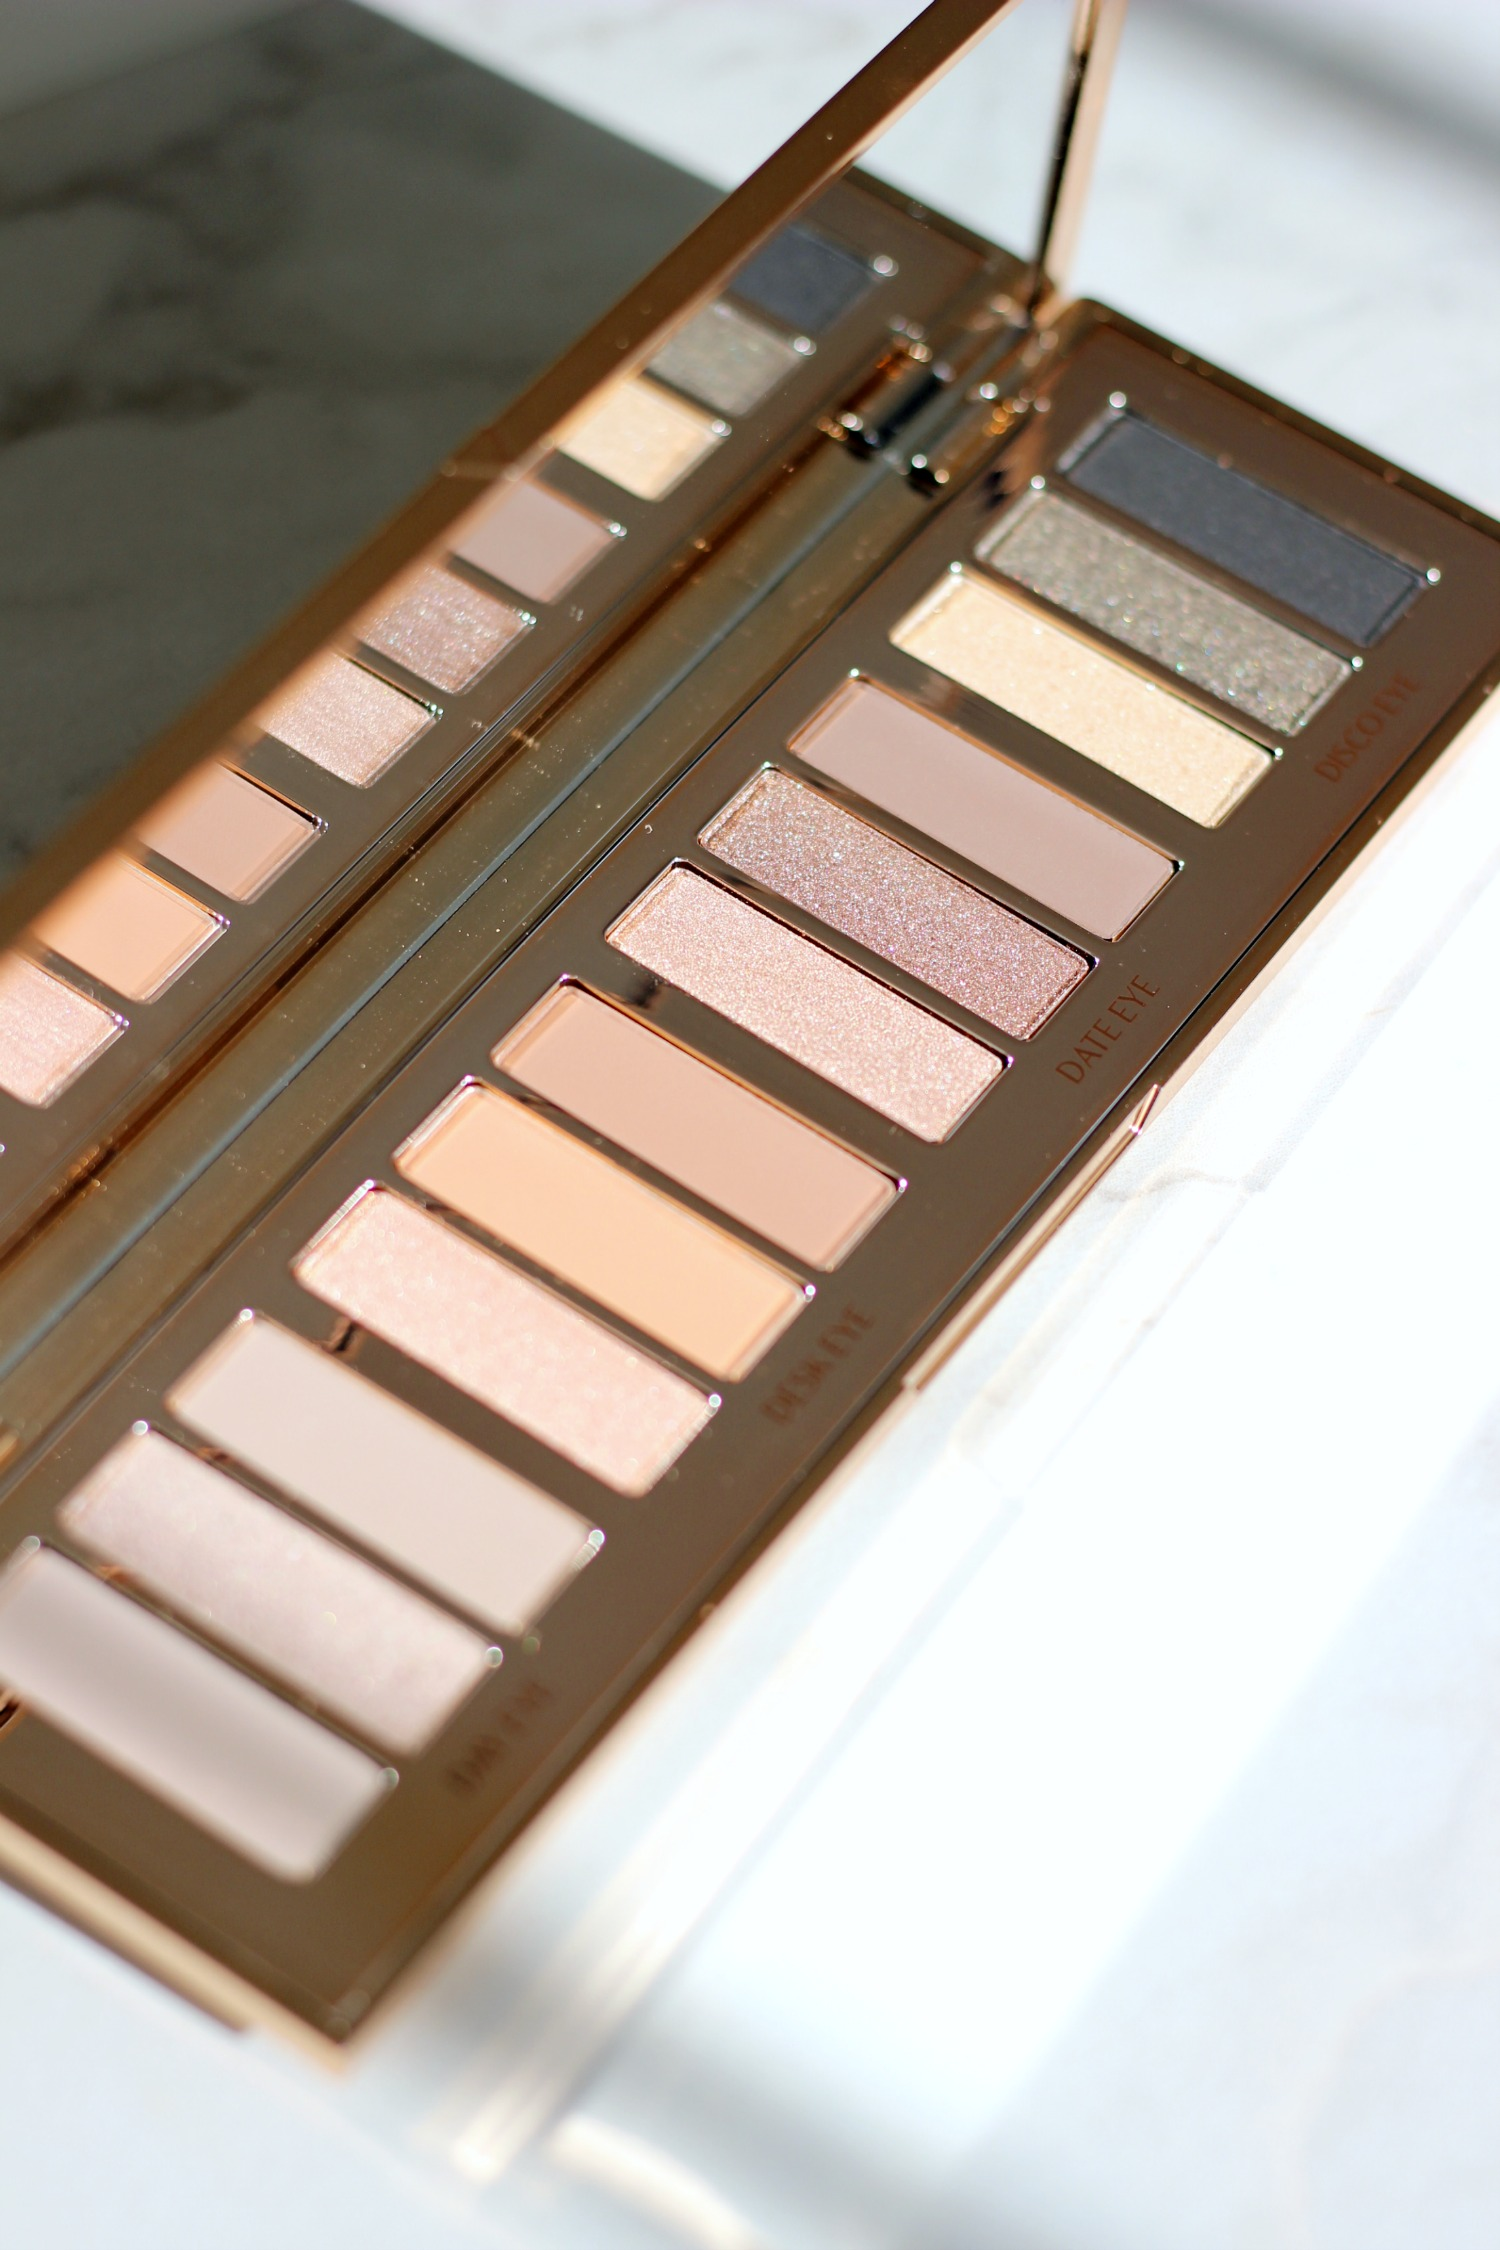 Charlotte Tilbury Instant Eye Palette in Natural Light